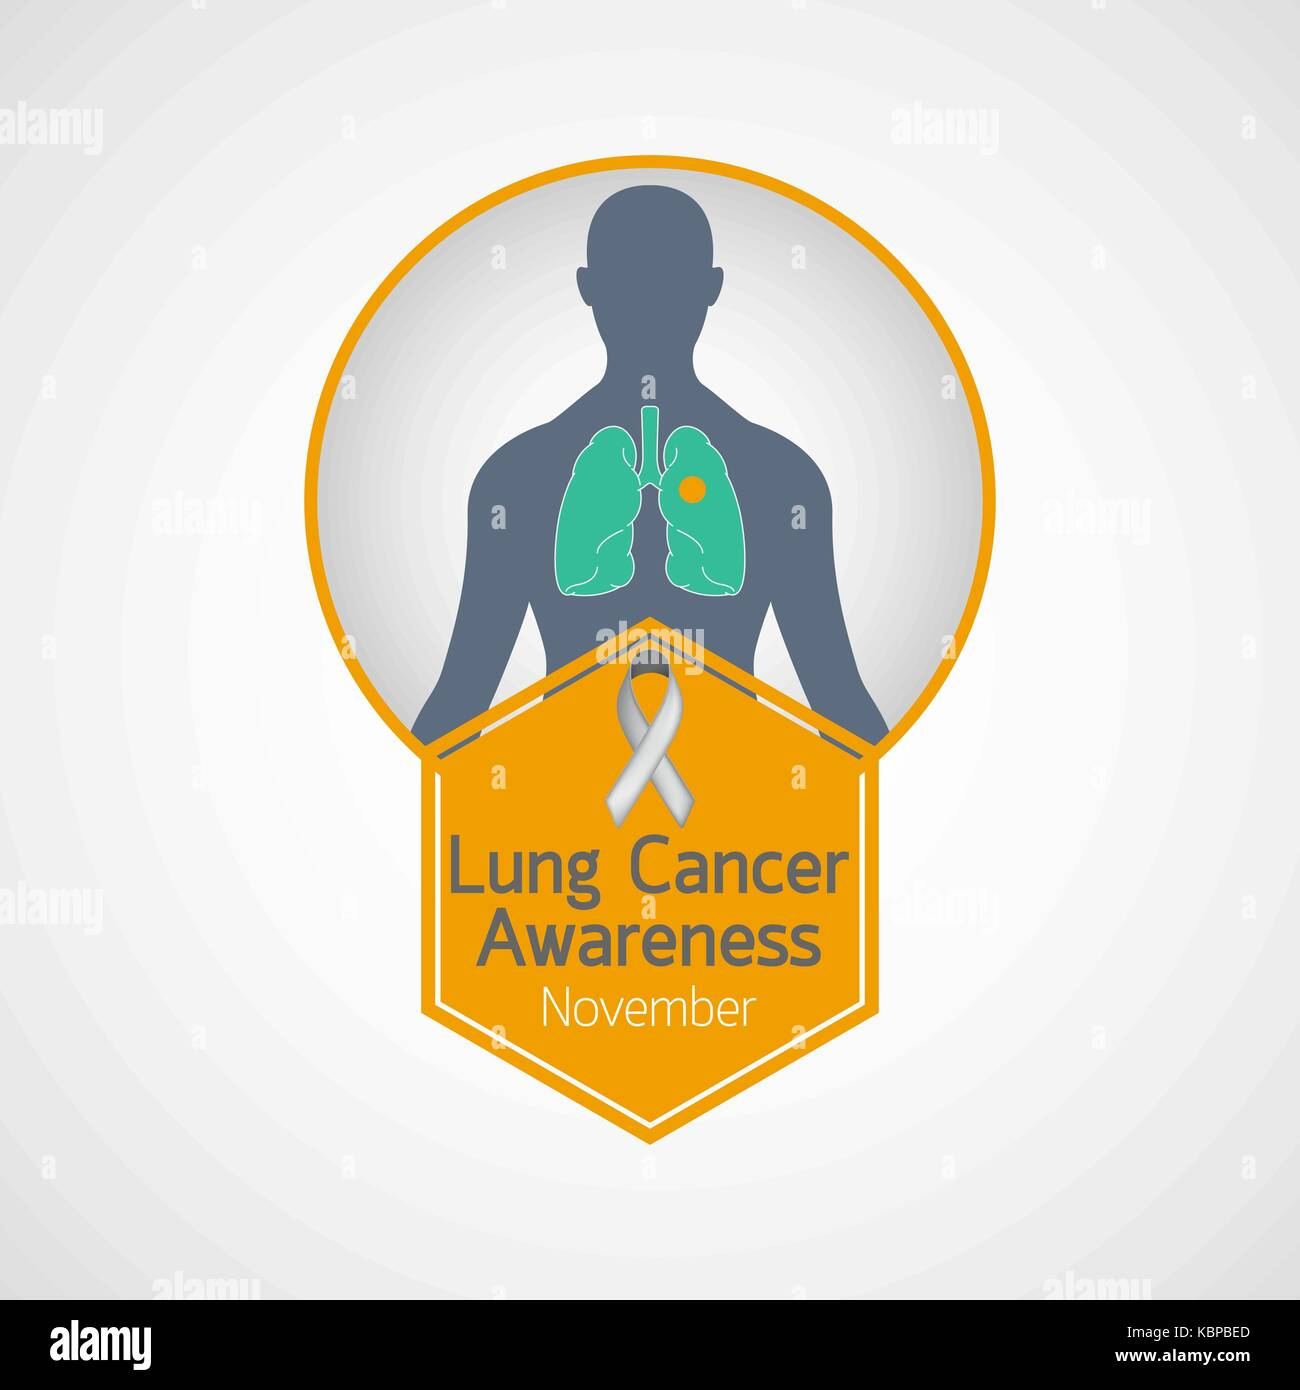 Lung Cancer Awareness Month vector icon illustration - Stock Vector